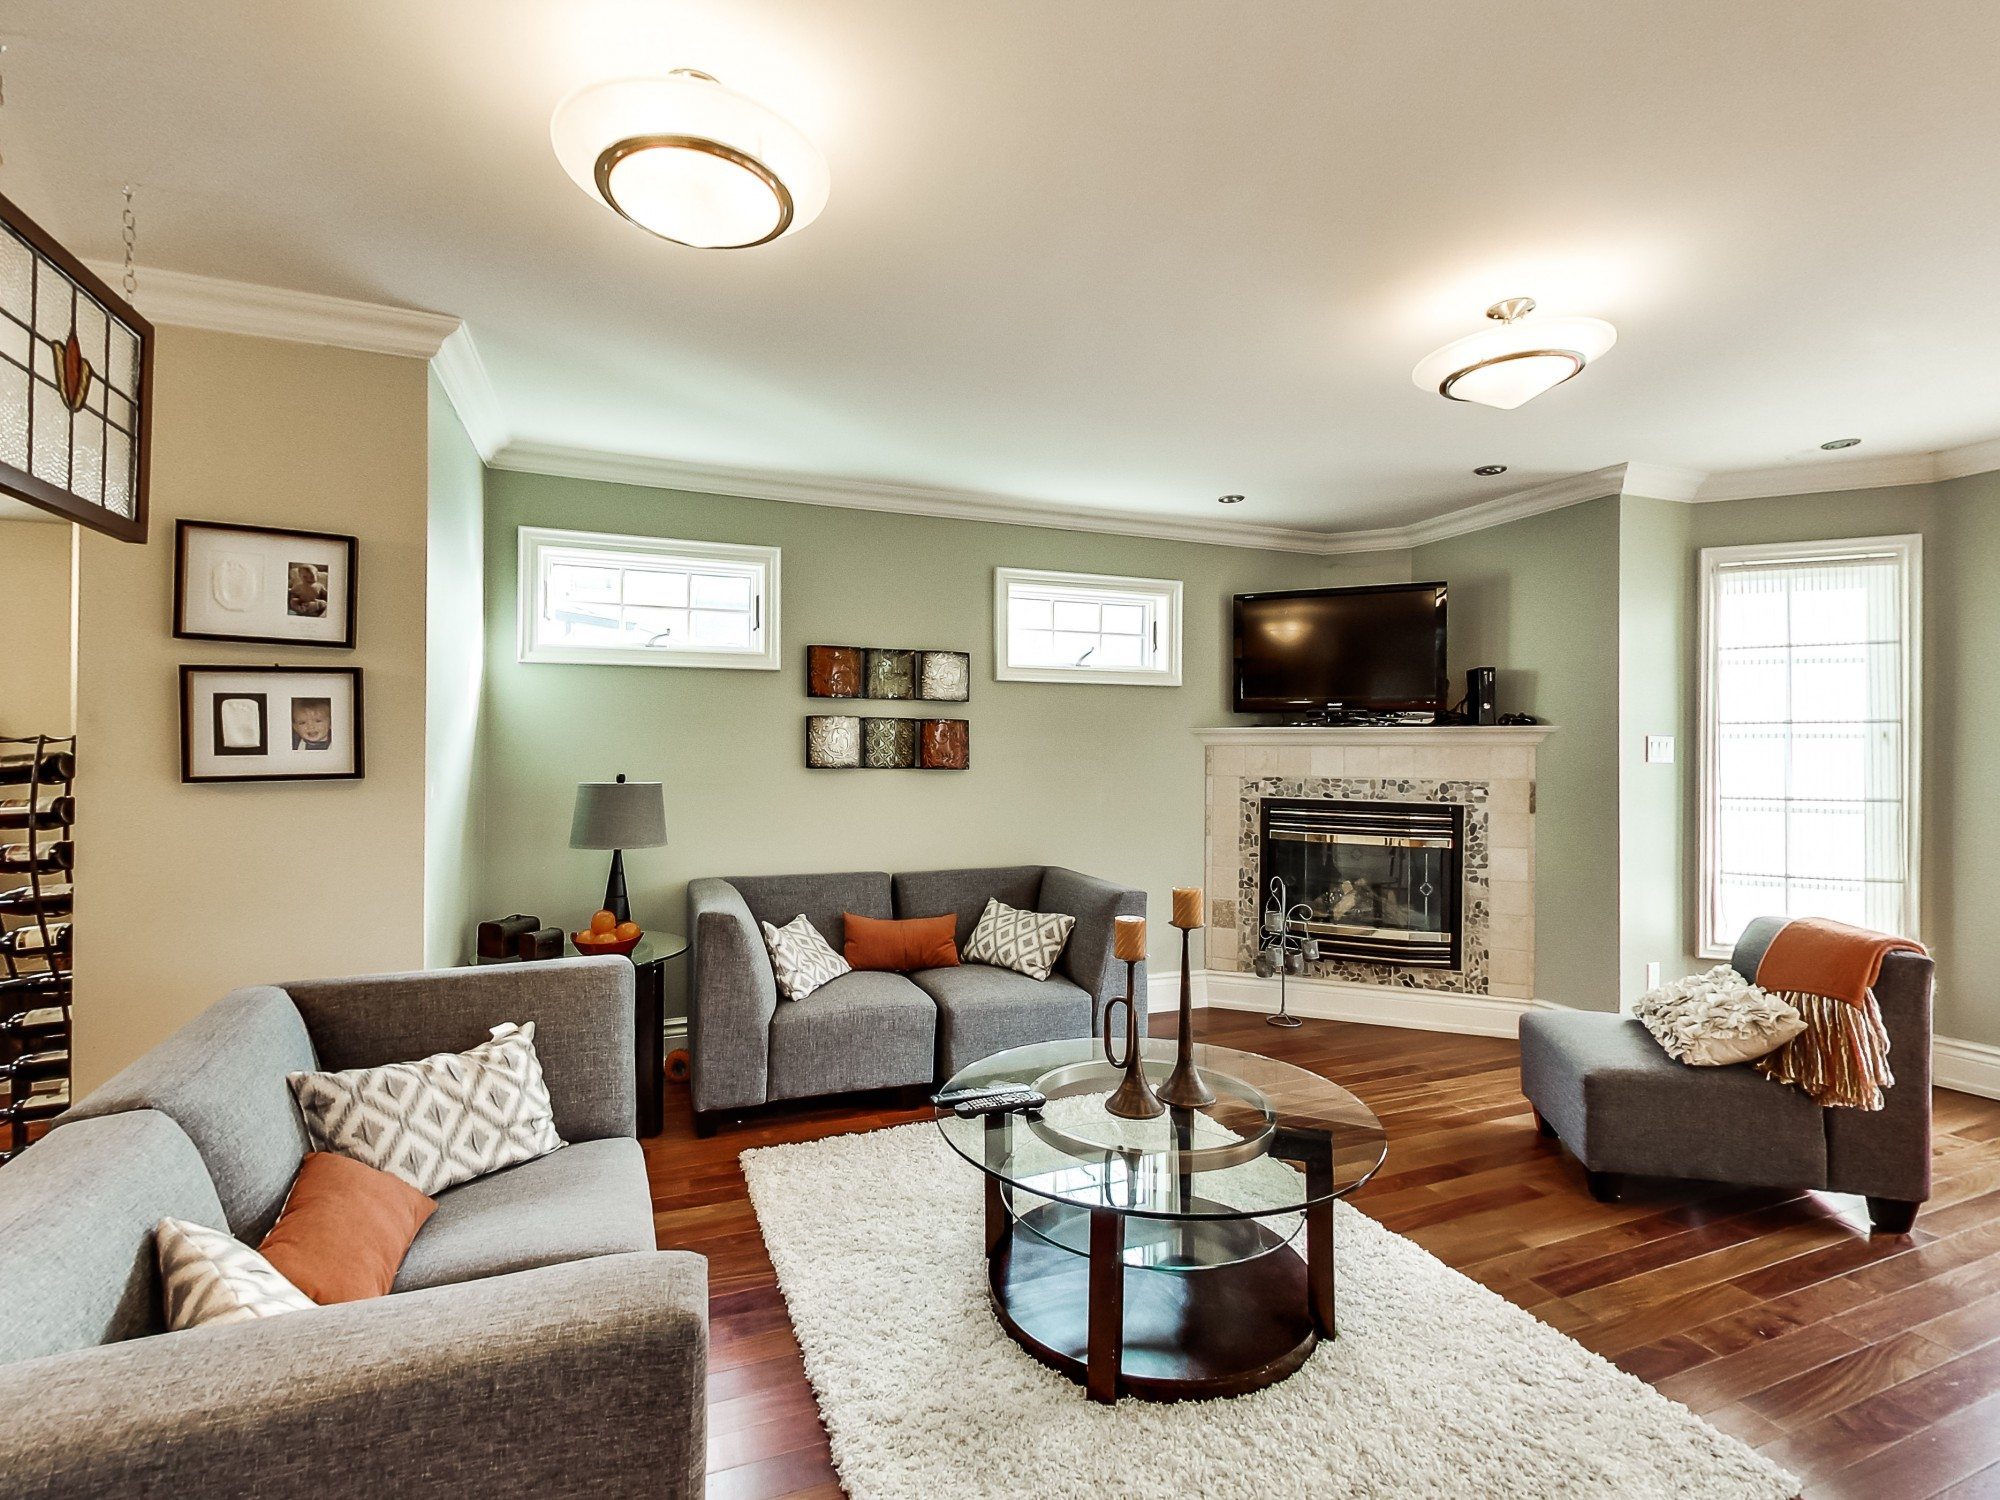 toronto-house-for-sale-129-imperial-street-5